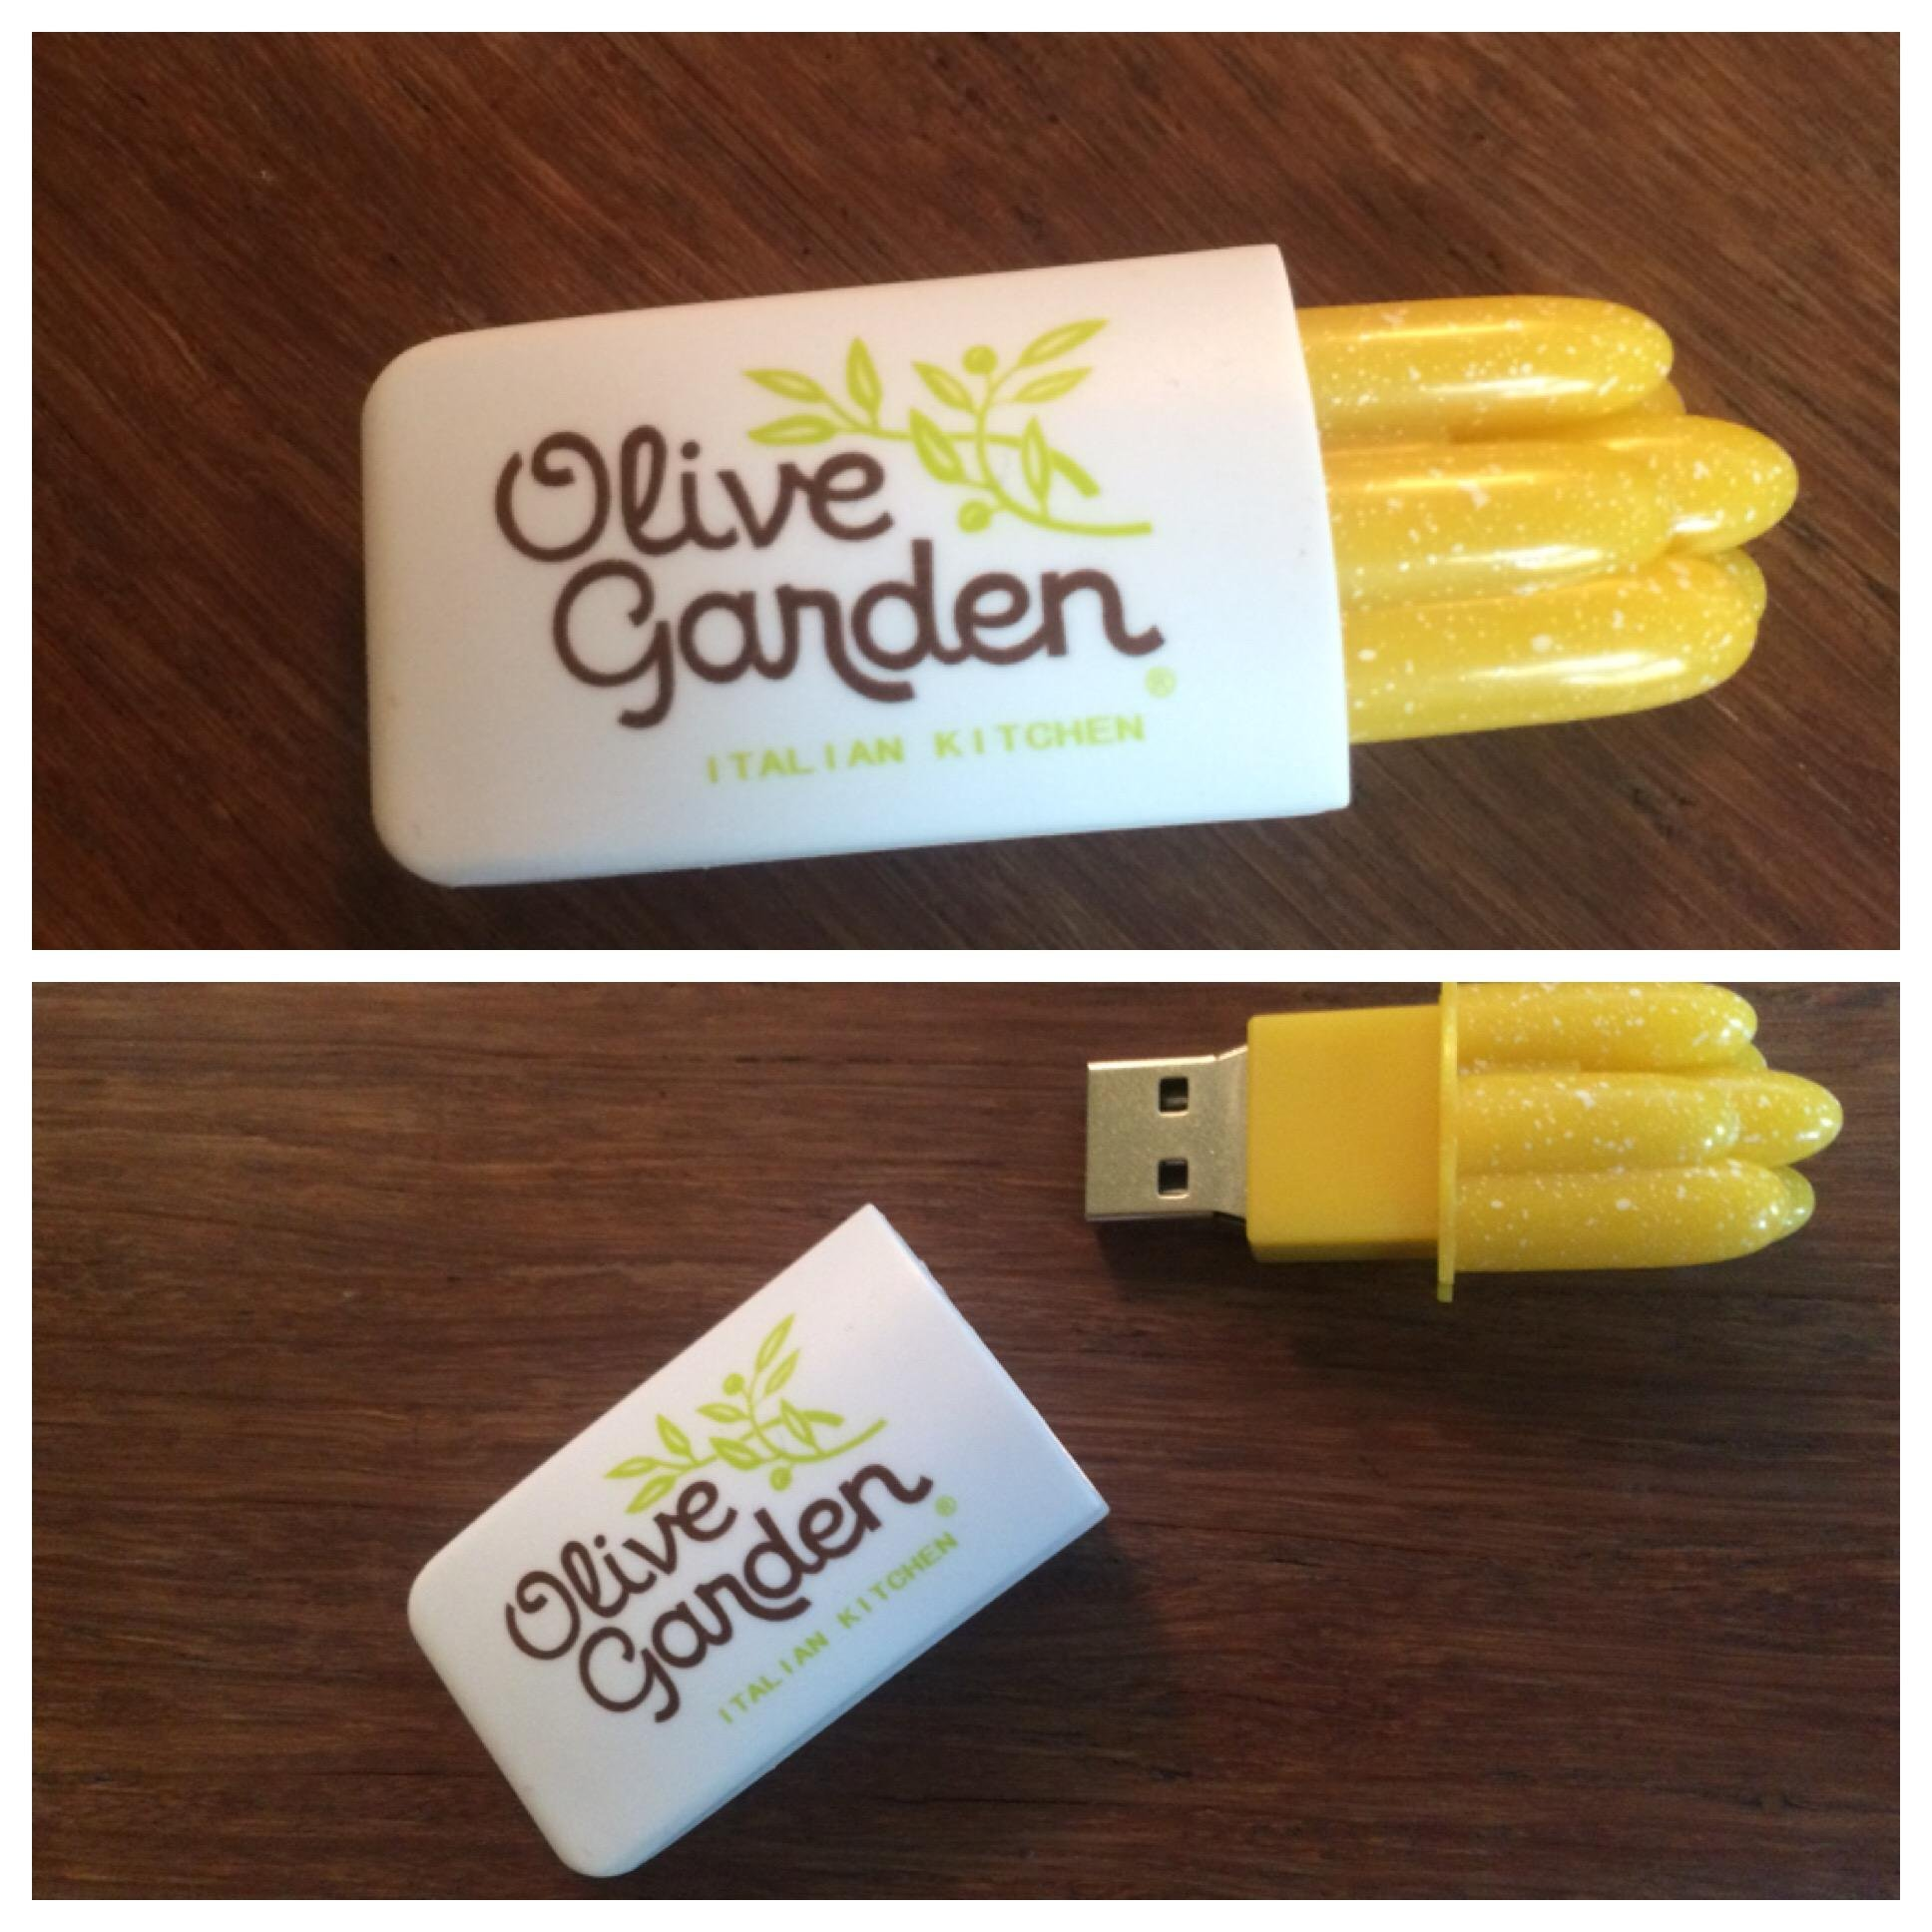 Olive Garden delivered this USB to our office today. – PUT ME LIKE